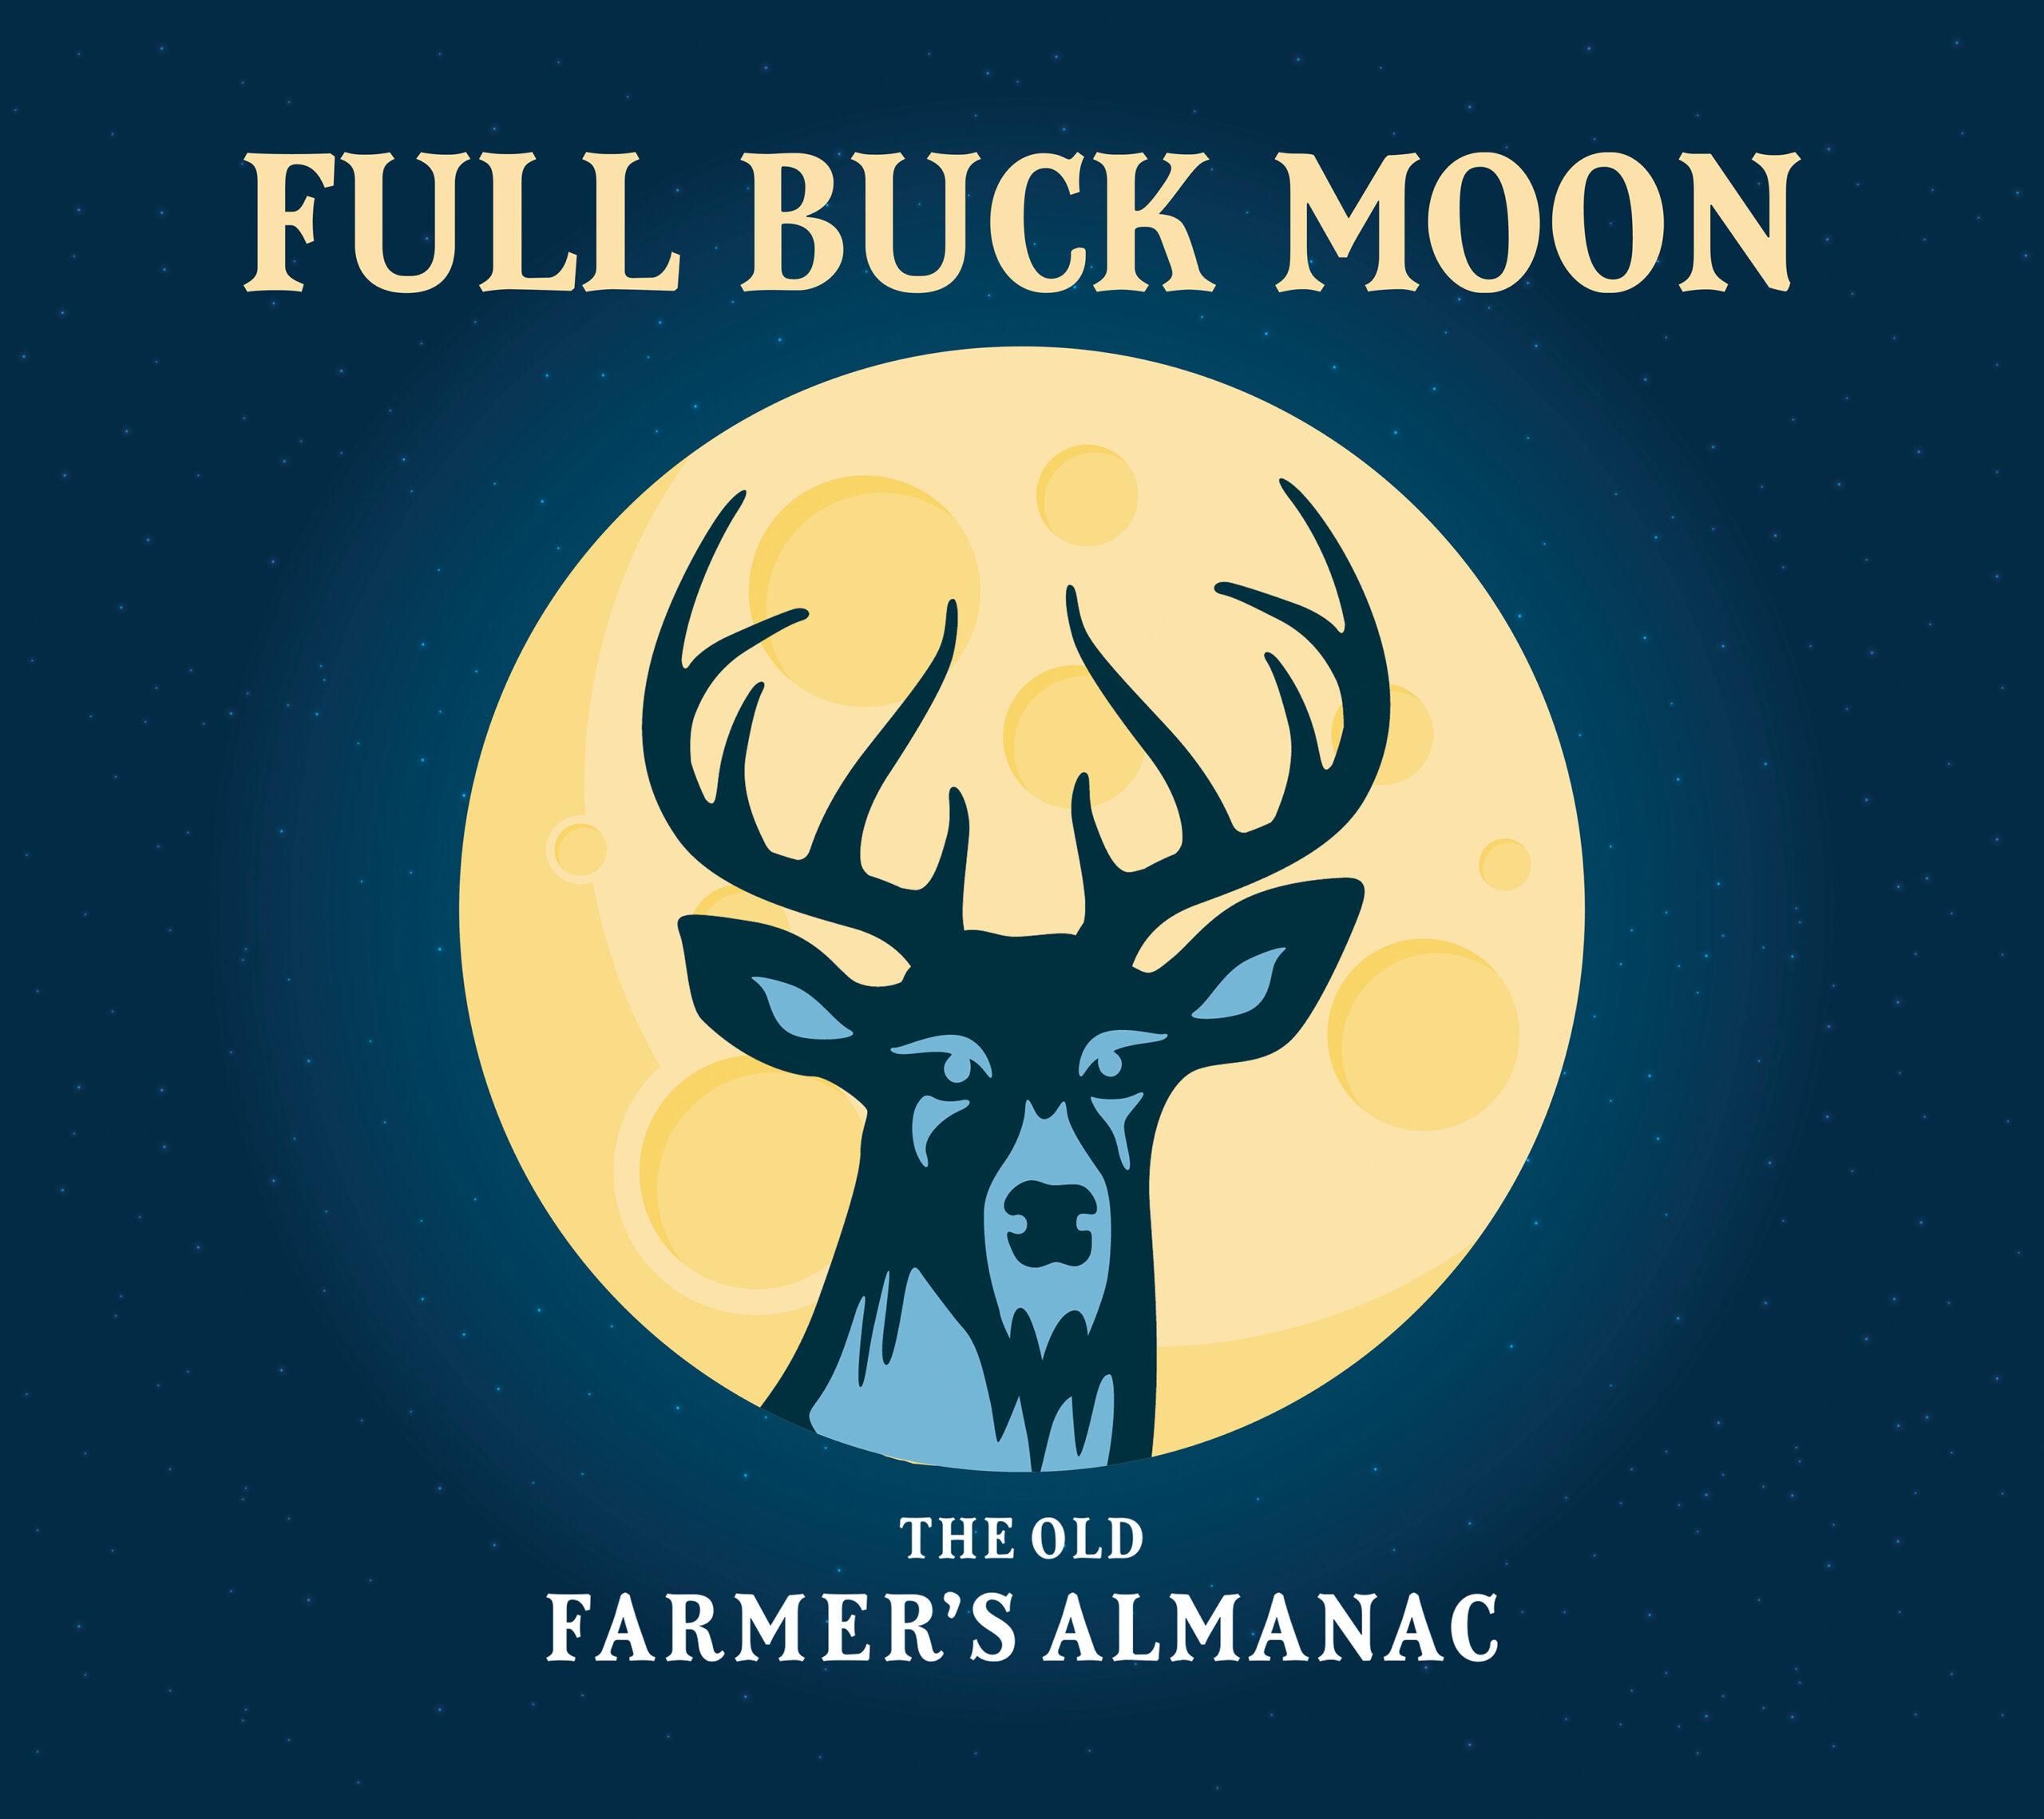 Full Moon For July 2020: The Full Buck Moon | The Old